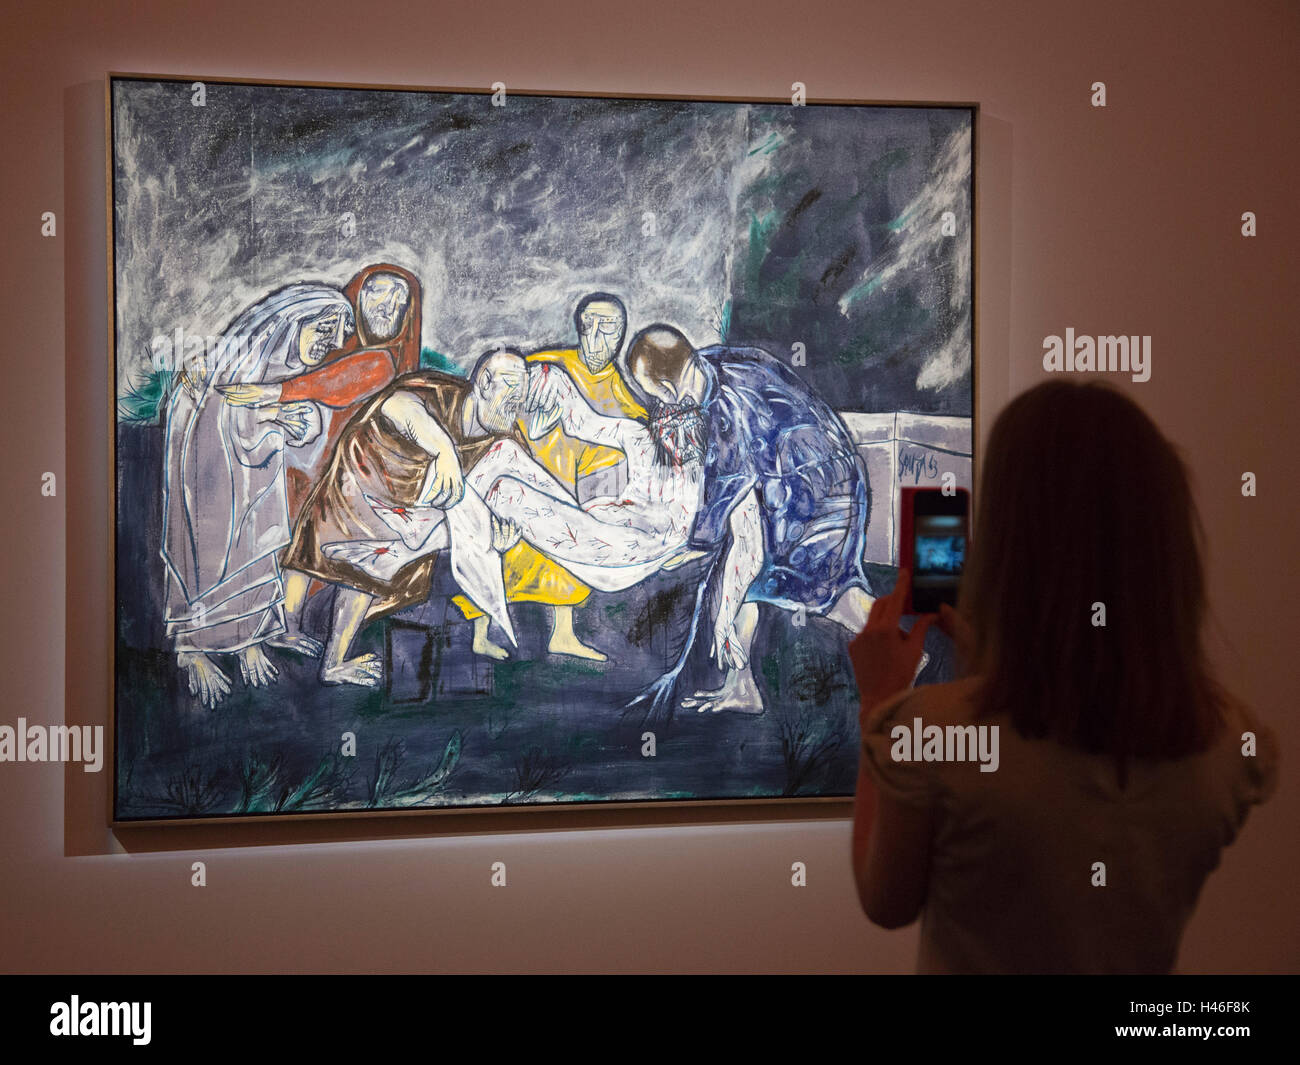 London, UK. 13 October 2016. Pictured: The Deposition, 1963, by Francis Newton Souza, est. GBP 400,000-600,000. - Stock Image